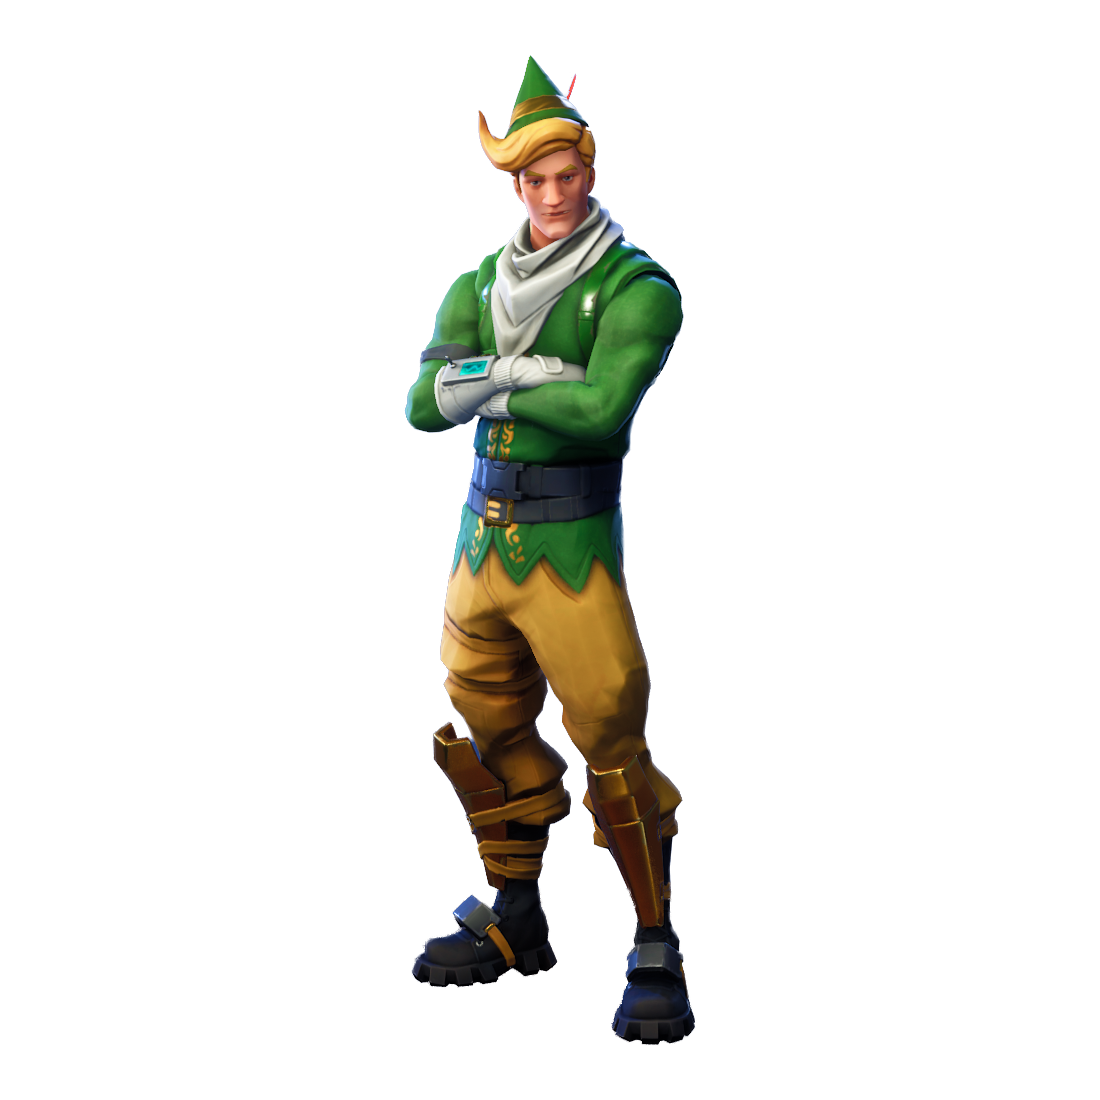 Fortnite Codename ELF PNG Image PurePNG Free